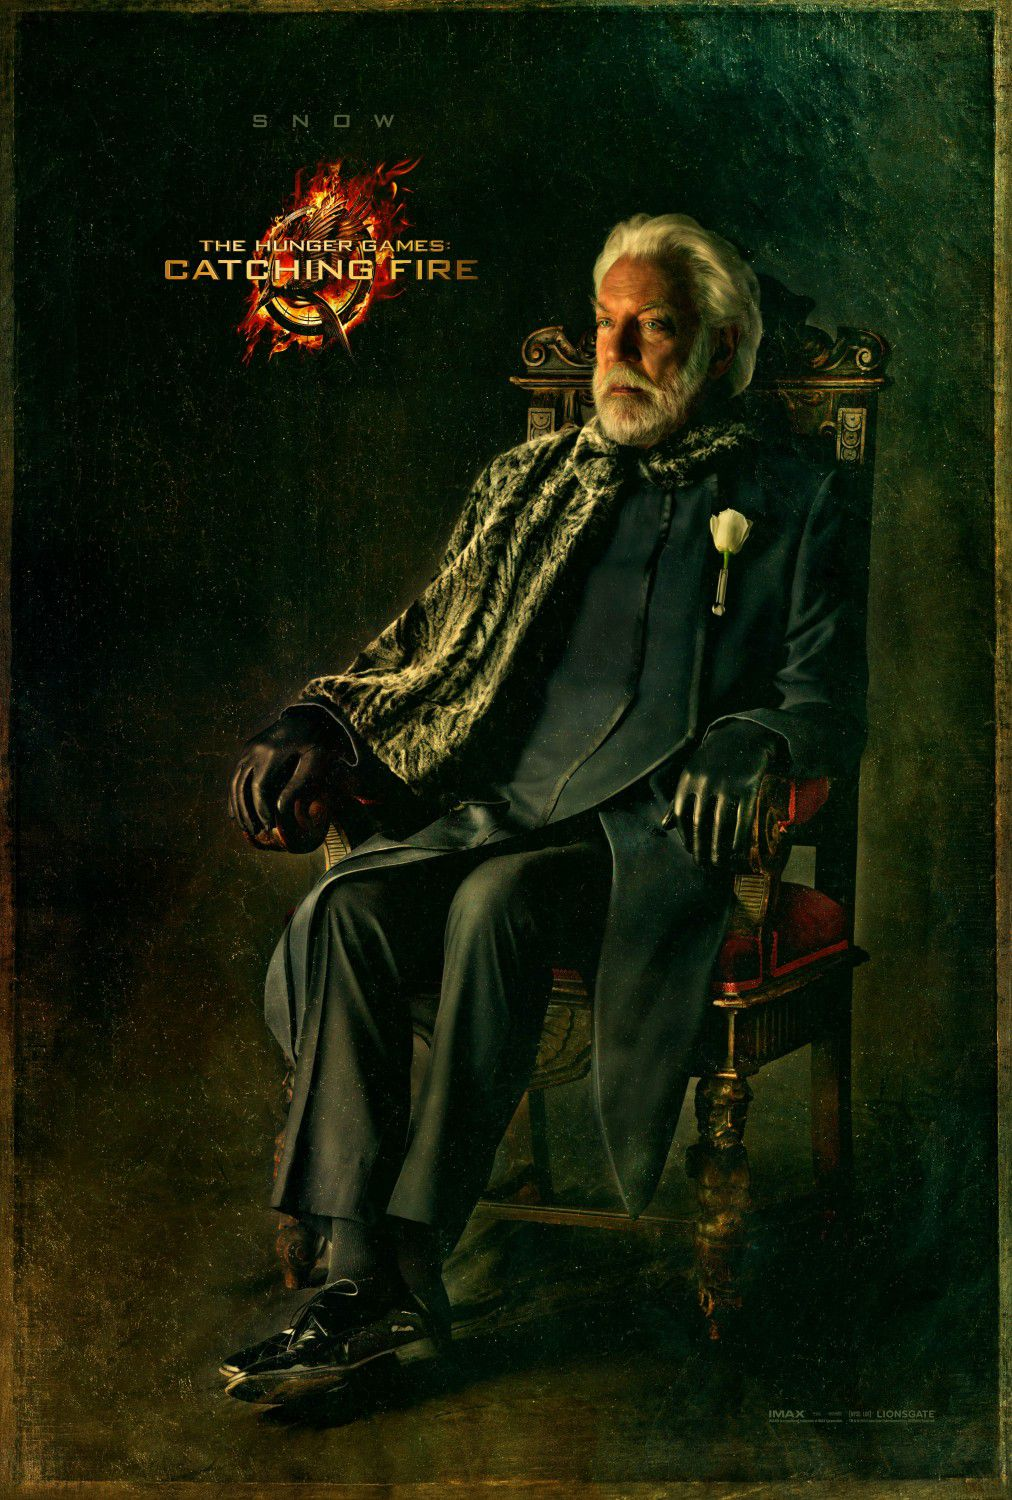 Donald Sutherland is Presidente Snow